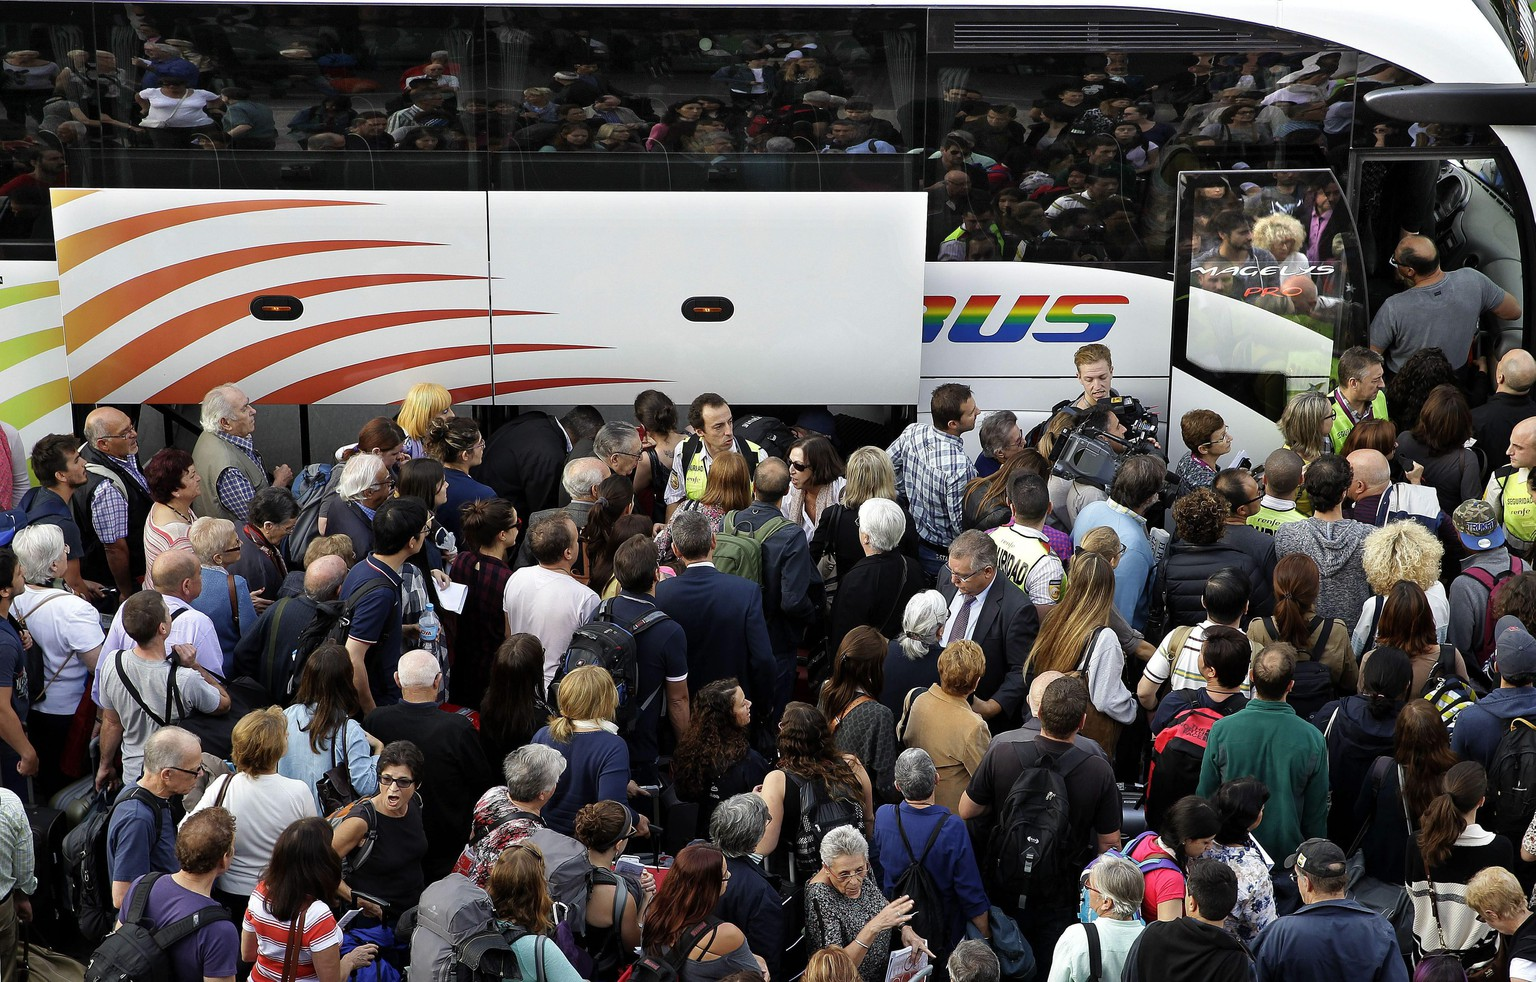 epa04968438 Passengers try to get aboard buses outside Sants station in Barcelona, northern Spain, 08 October 2015, after the train service between the Catalonian cities of Tarragona and Figueres had to be suspended due to the theft of optical fibre wire which has affected the safety of the train traffic. Some 7,000 passengers and 20 trains, including some AVE high-speed trains, have been affected by the incident. State-run train service Renfe has chartered 15 buses to move the passengers from Tarragona to Barcelona. The hig-speed service has been restored in the meantime, according to Renfe.  EPA/ALBERTO ESTEVEZ